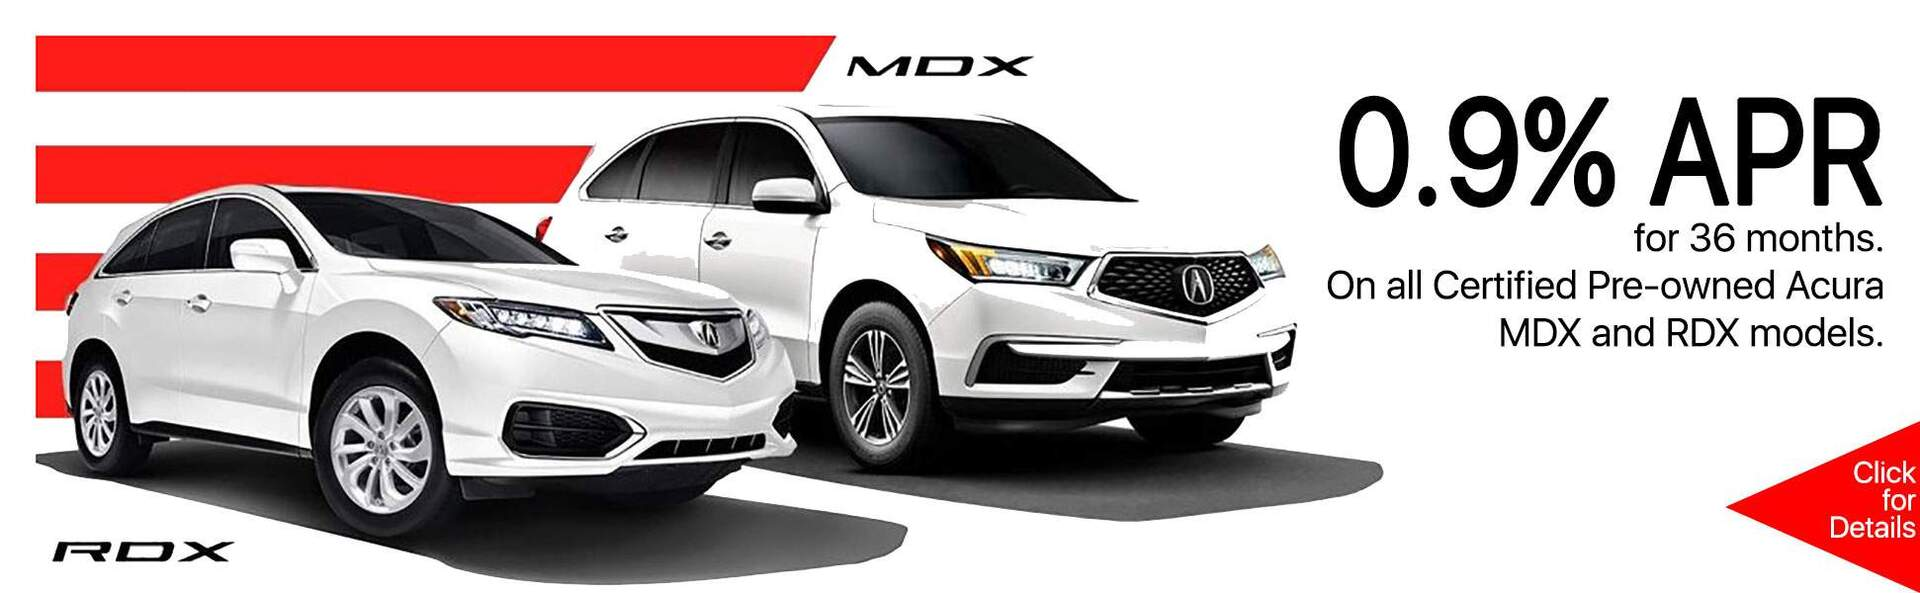 MDX RDX Certified Pre-owned APR